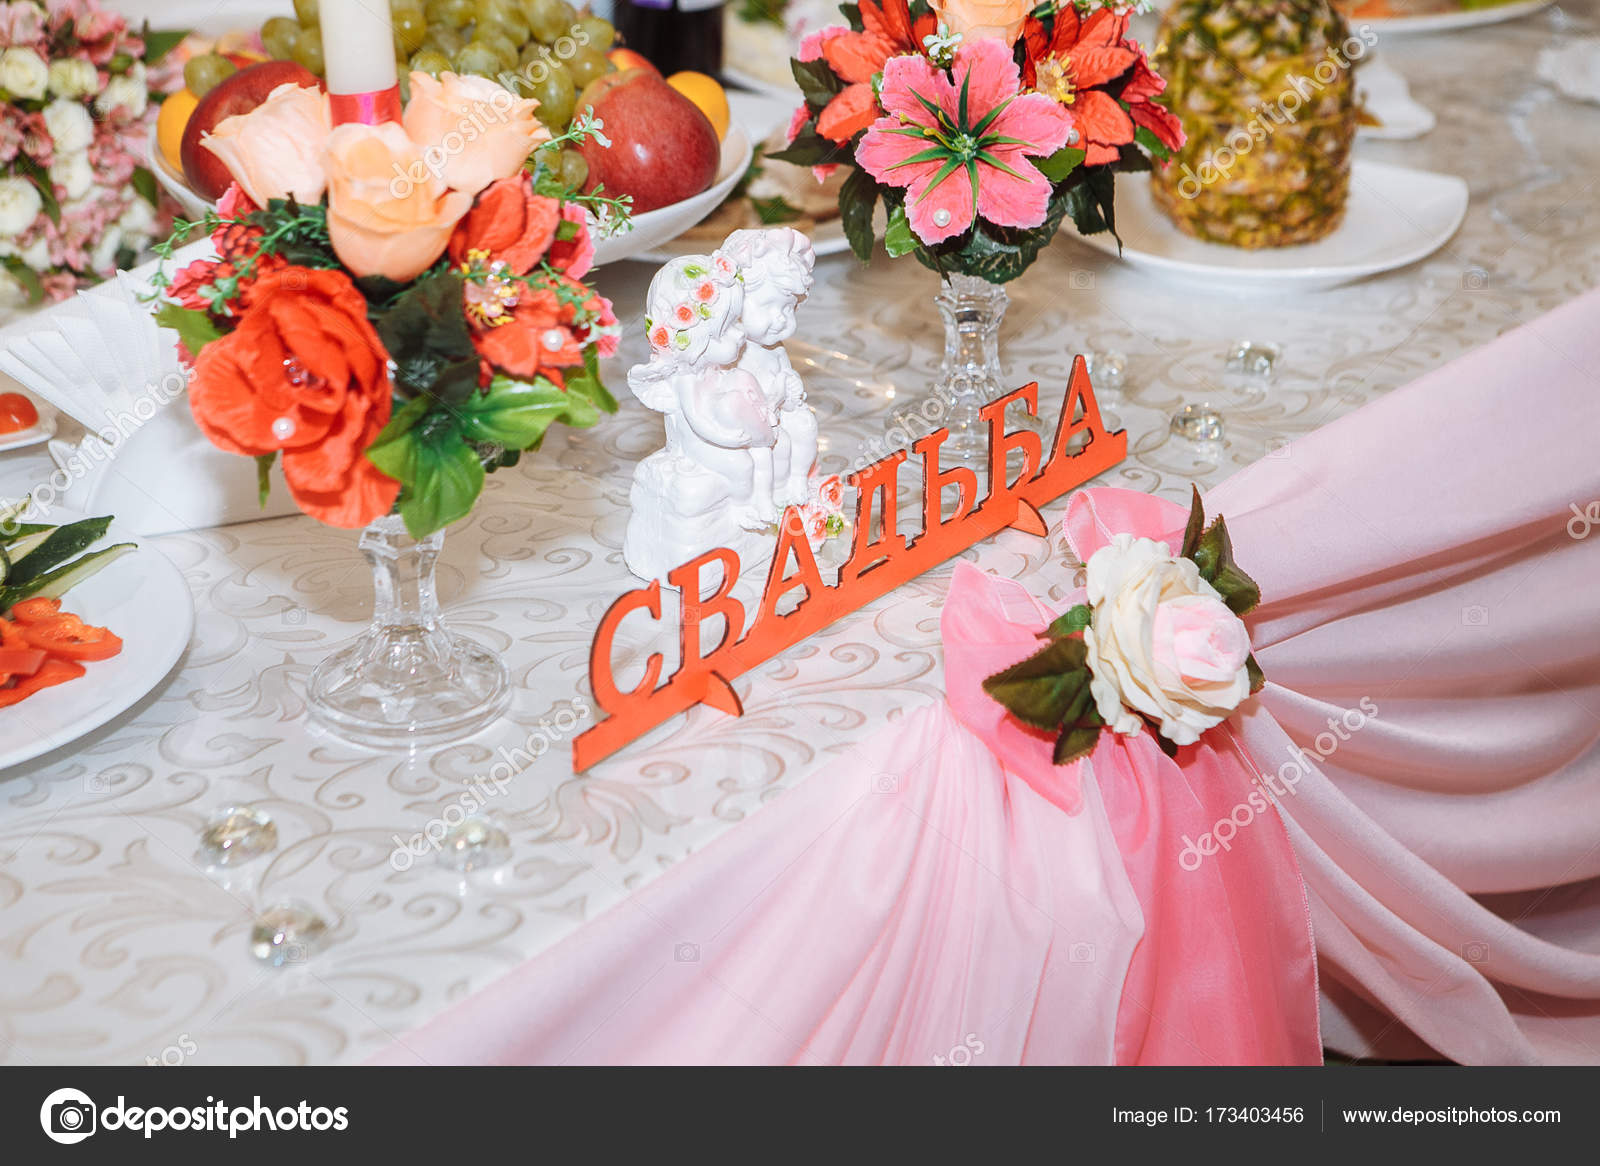 wedding table decorations. Flowers on vase on wedding table — Stock ...